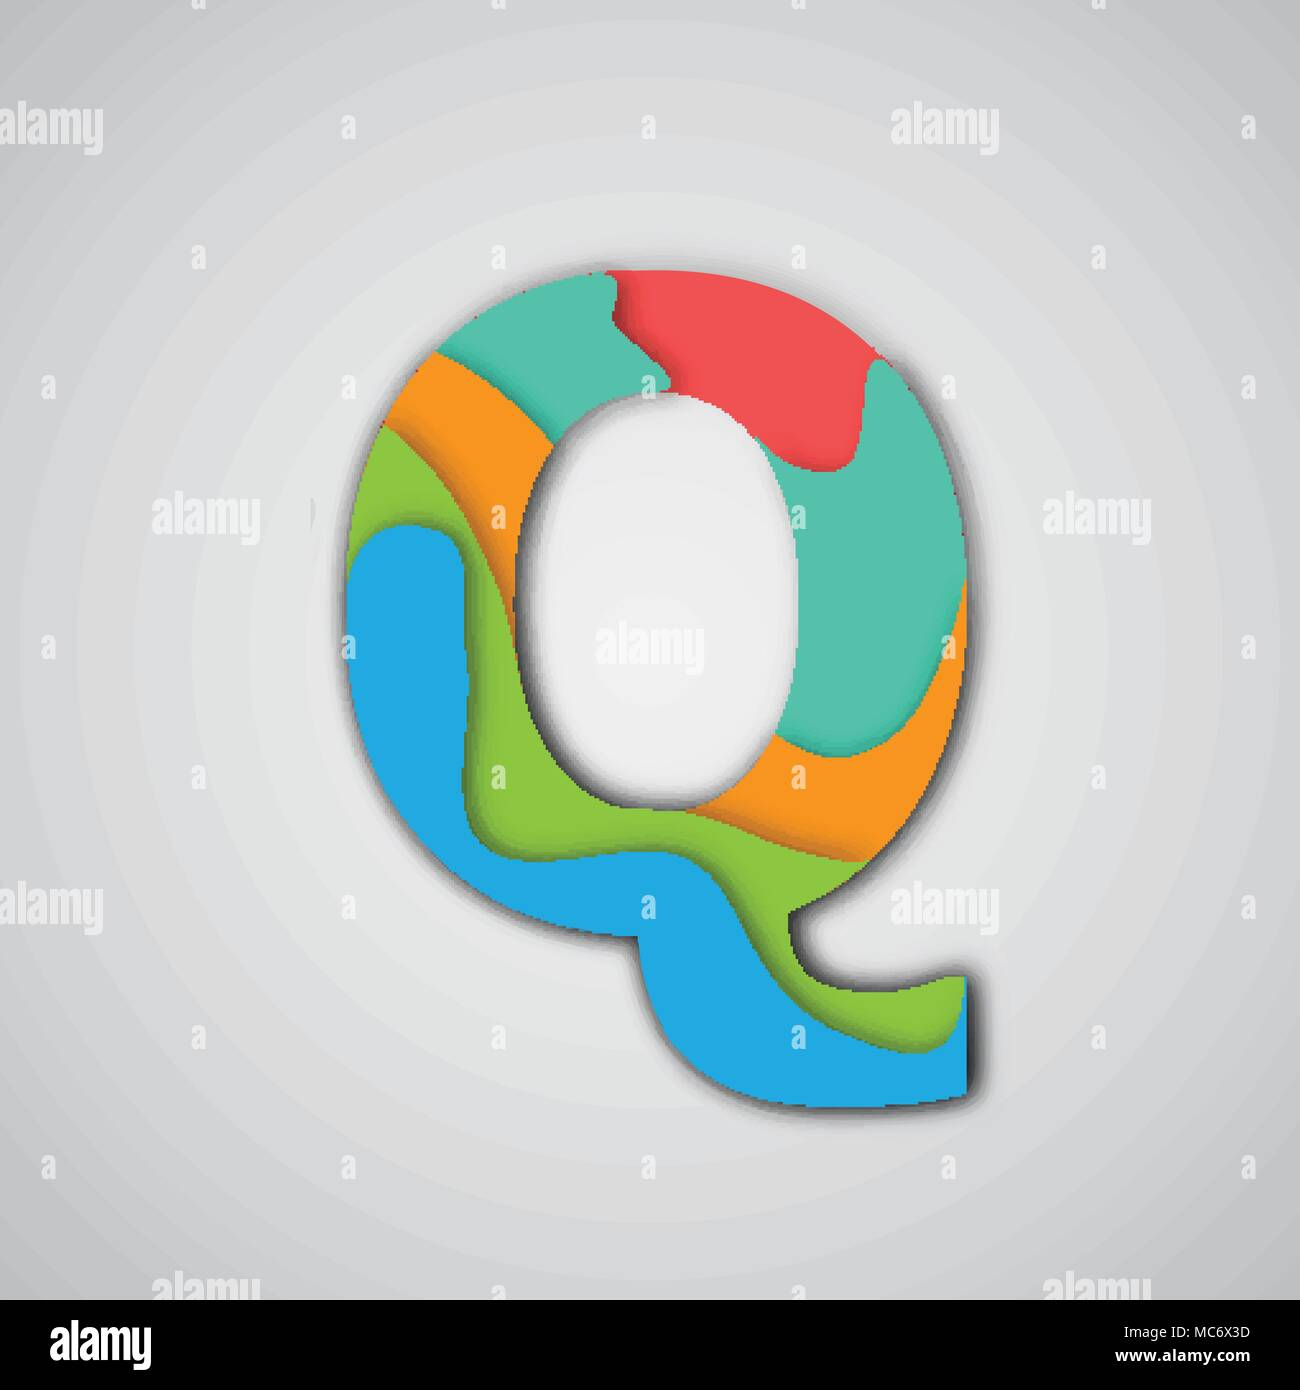 Colorful papercut layered character, vector - Stock Image